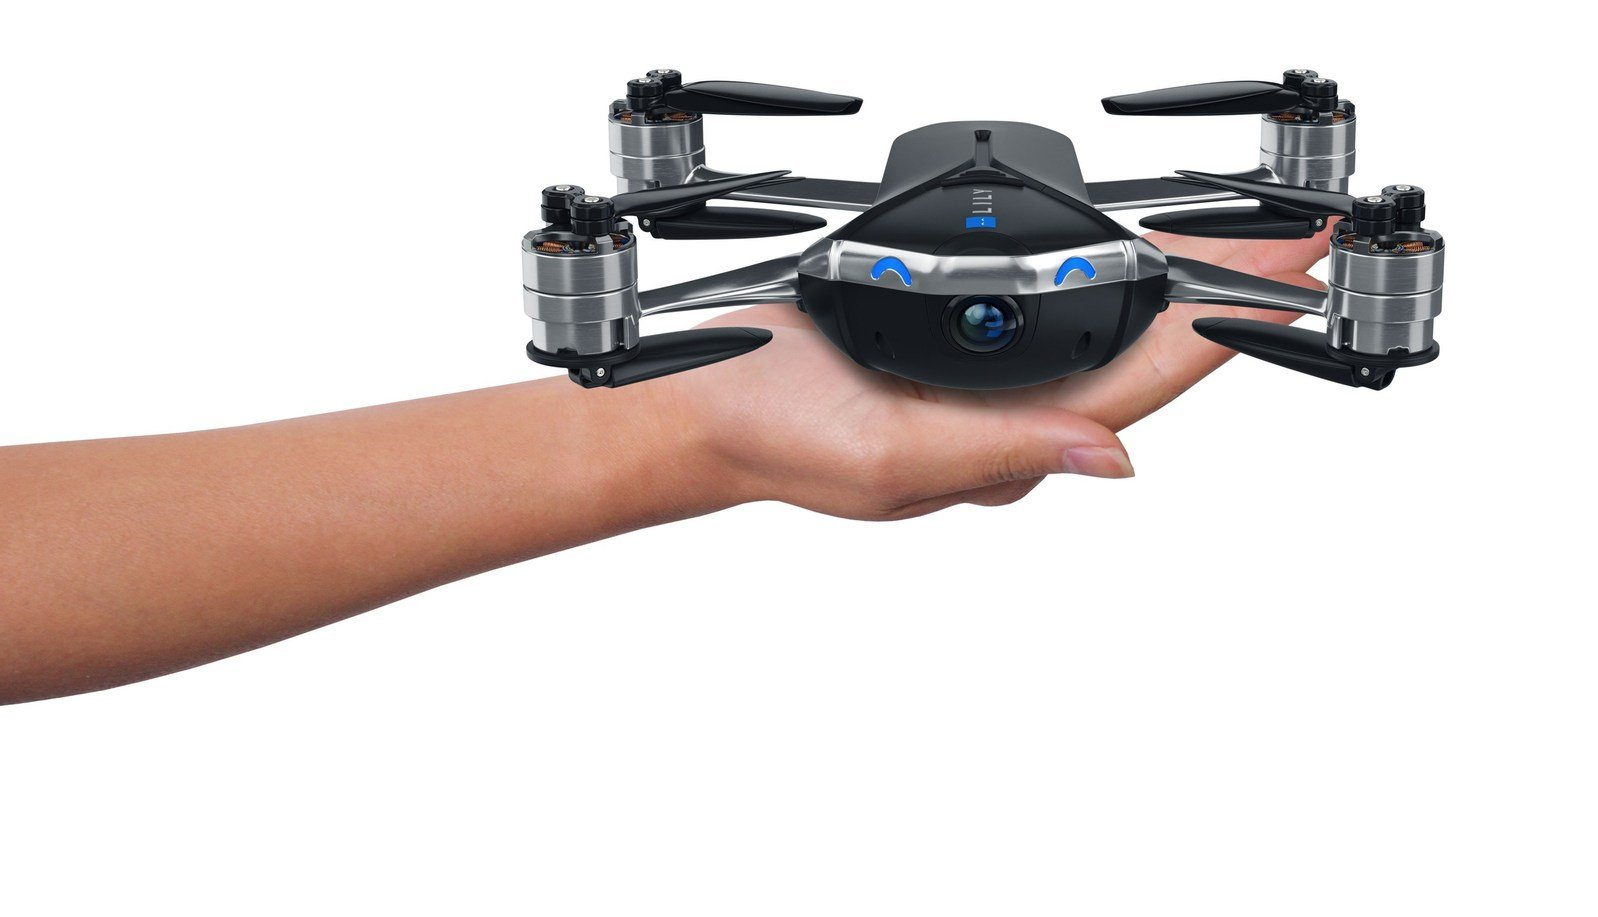 Lily Next-Gen: Point-and-shoot camera drone captures follow-me video in 4K ultra HD. Track a person or fly up to a half mile away. Small enough to fly indoors, light enough to take anywhere. (Mota Group)